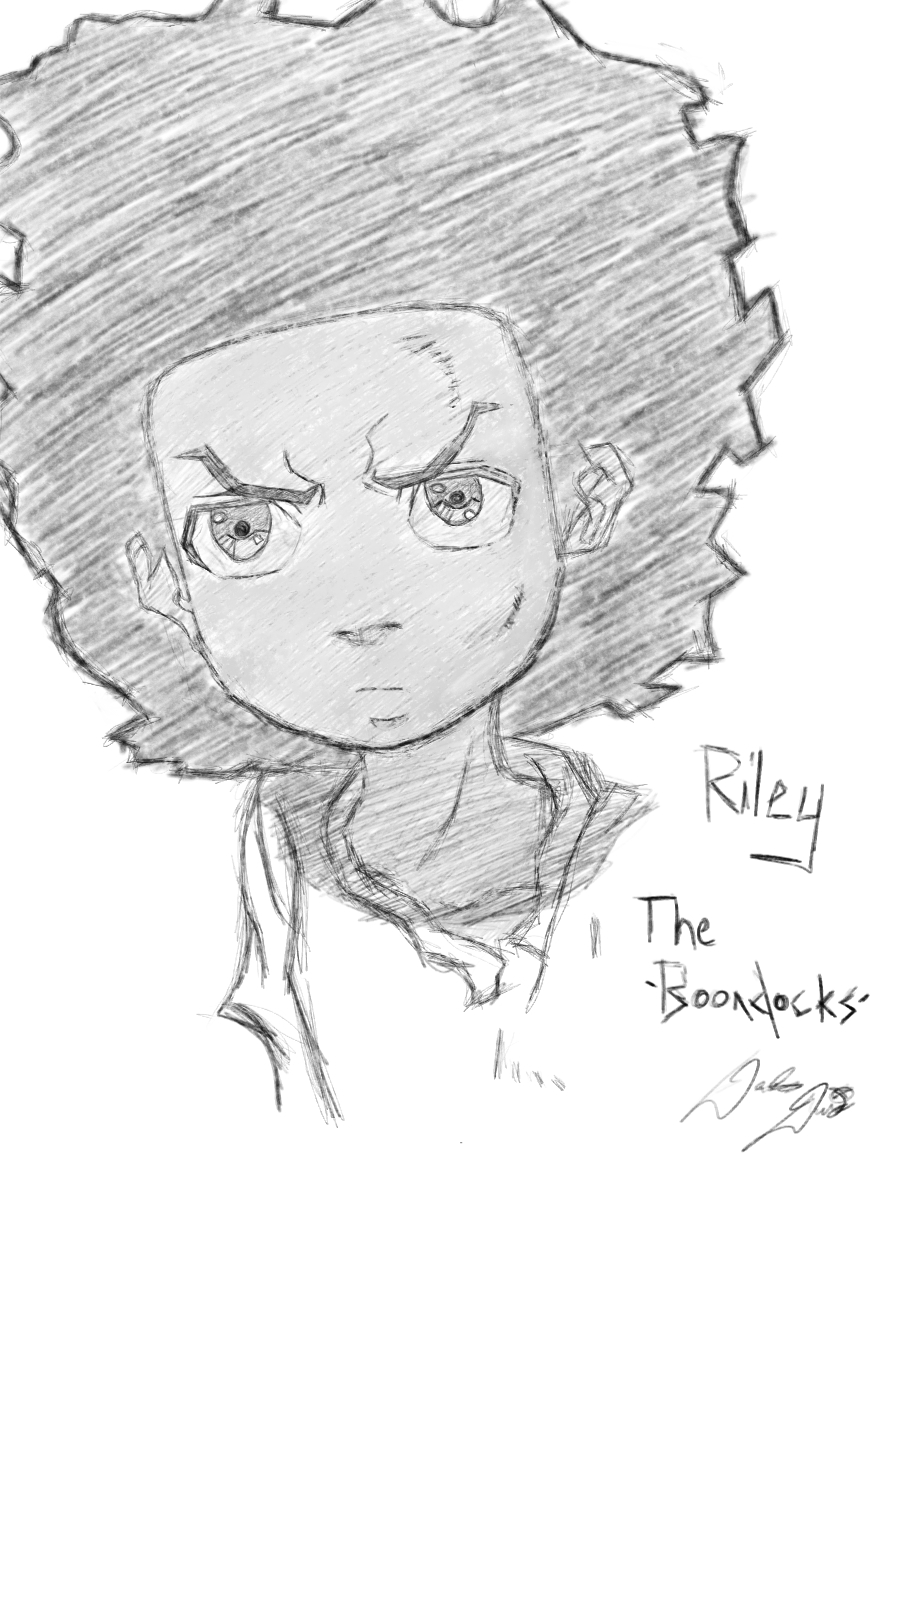 boondocks drawings riley boondocks by ethersstar on deviantart drawings boondocks